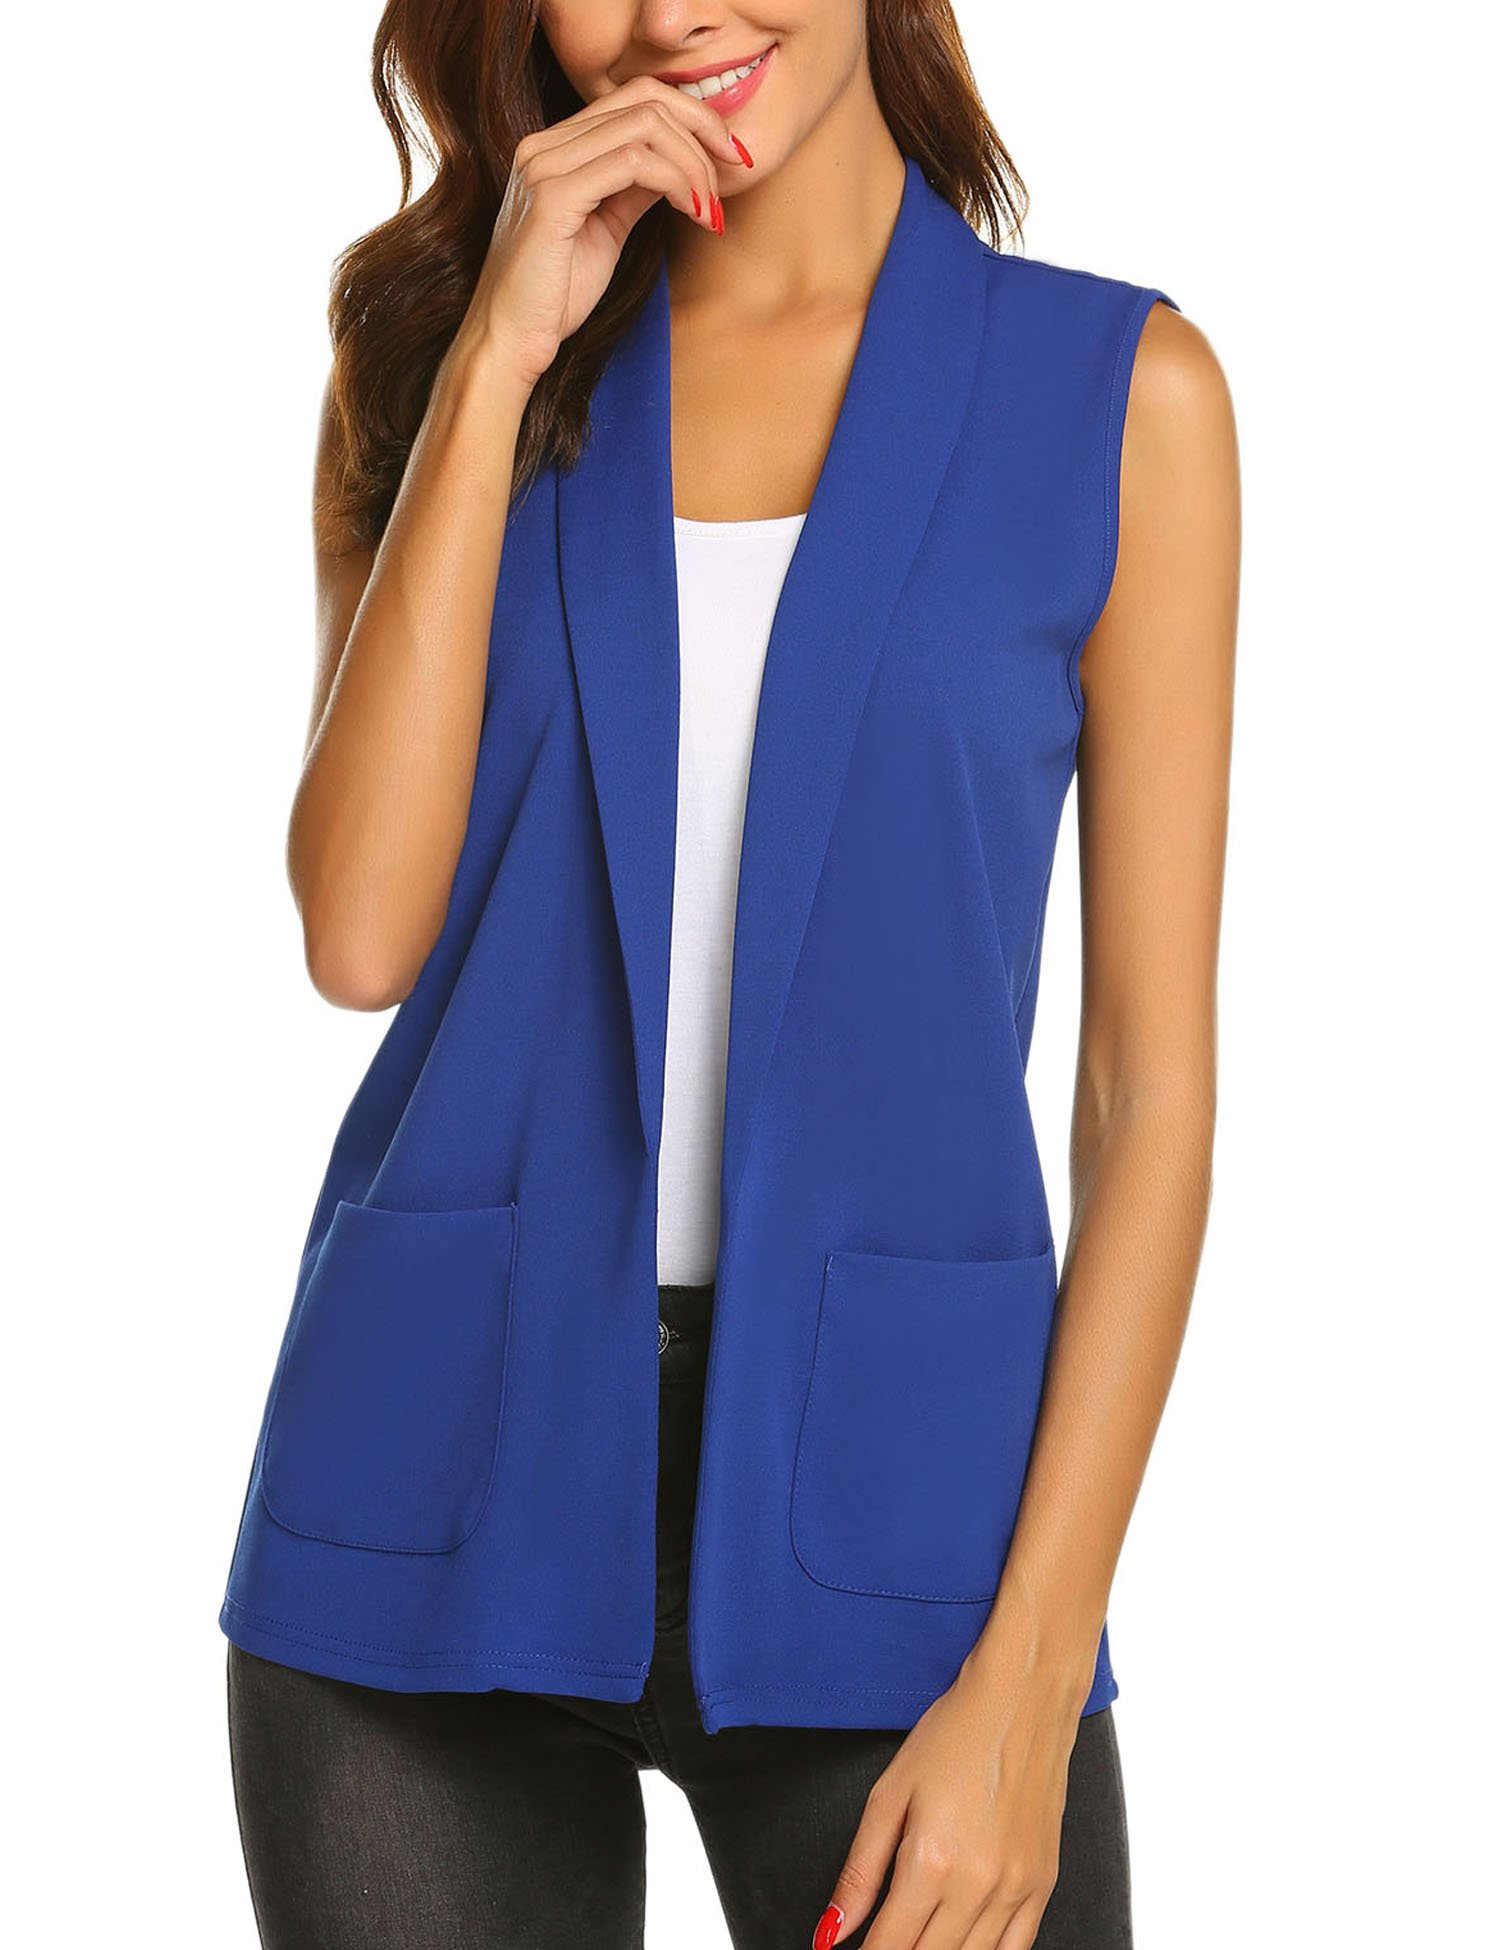 Dealwell Women Sleeveless Shawl Draped Blazer Open Front Pocket Cardigan Vest Top (Royal Blue, Small)